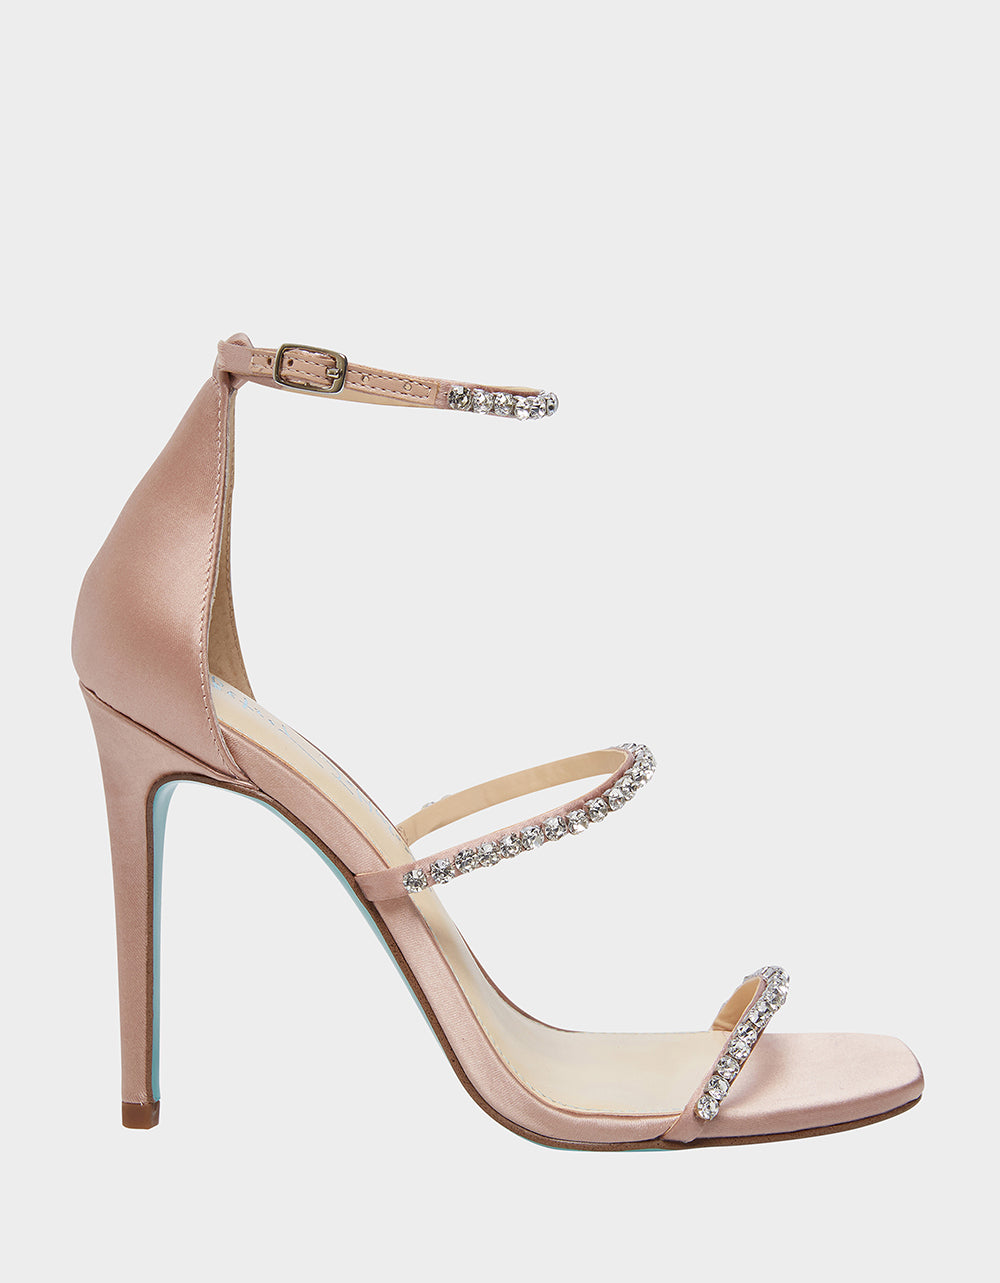 SB-ELISA NUDE SATIN - SHOES - Betsey Johnson